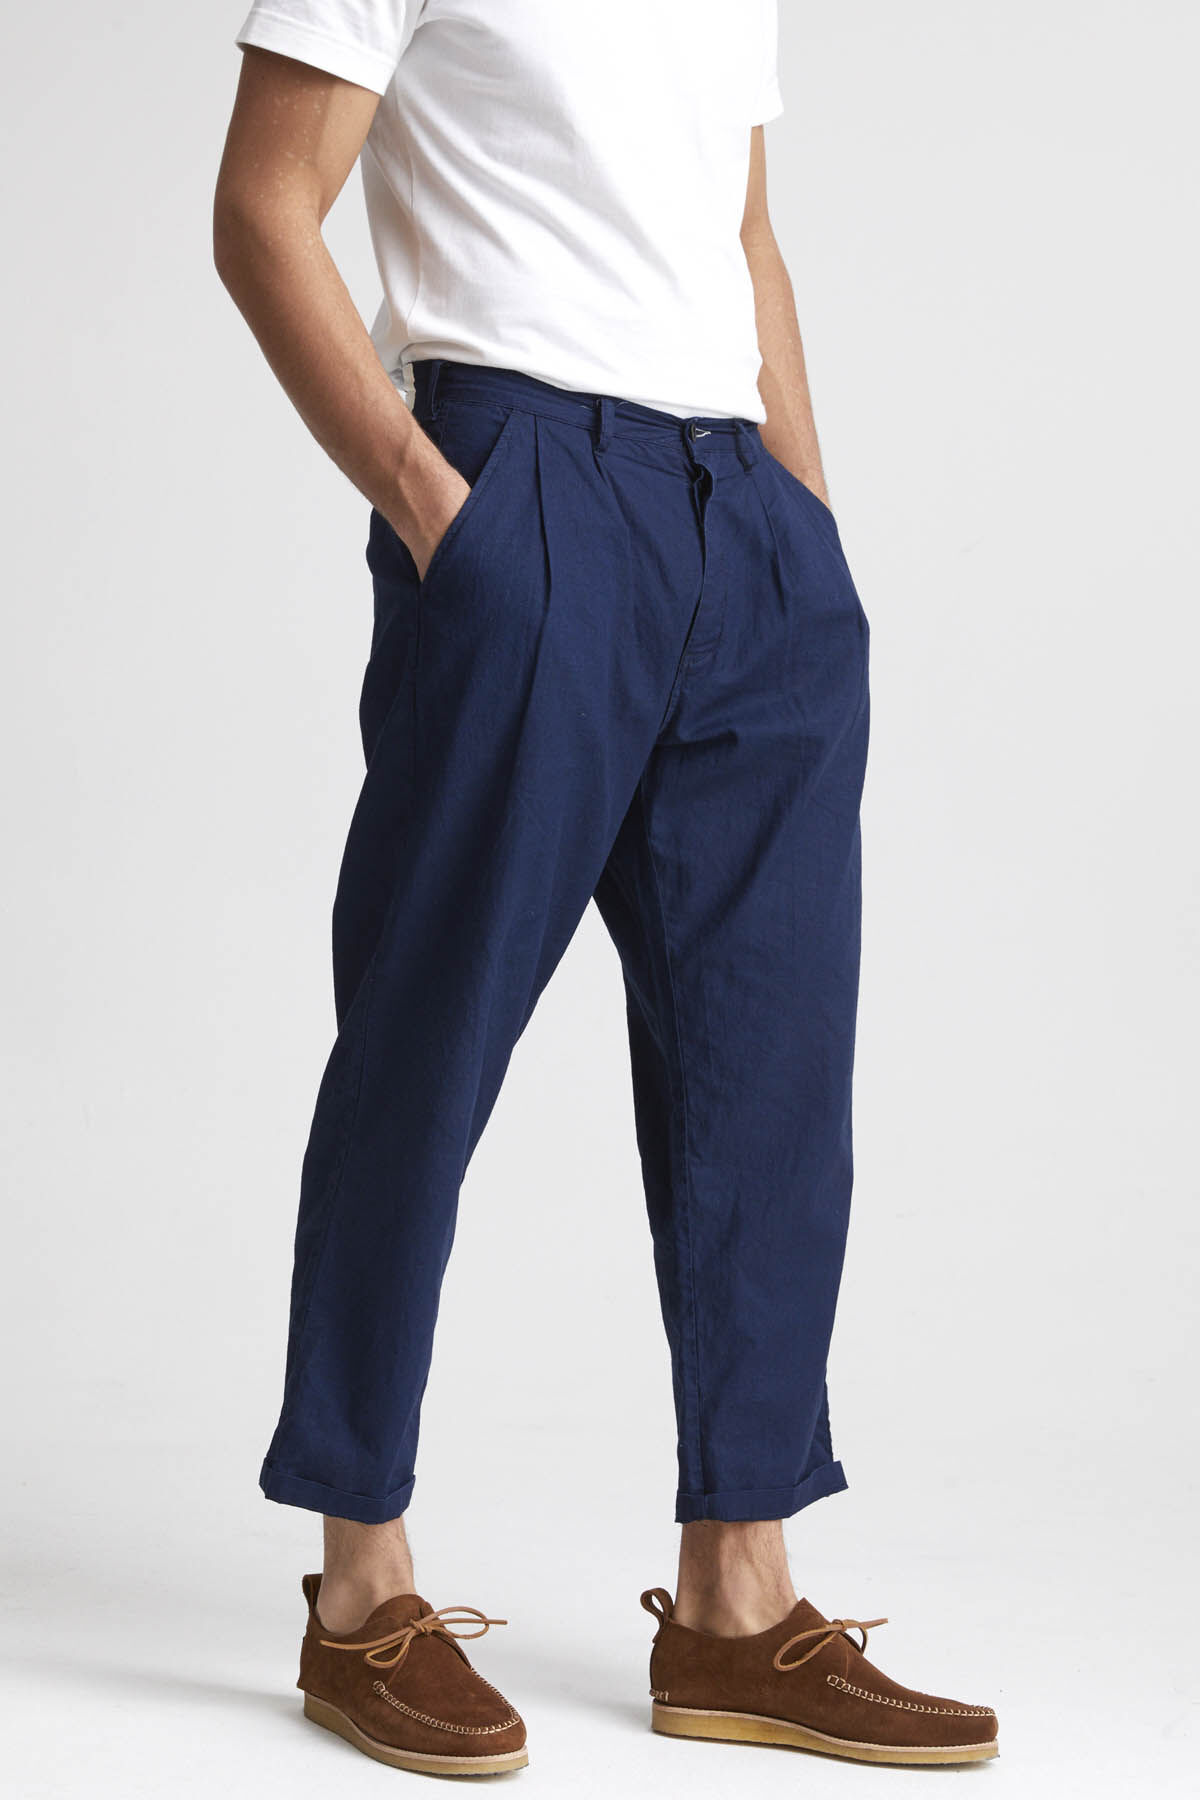 HARRY PANT Cotton & Linen Denim - Relaxed Fit